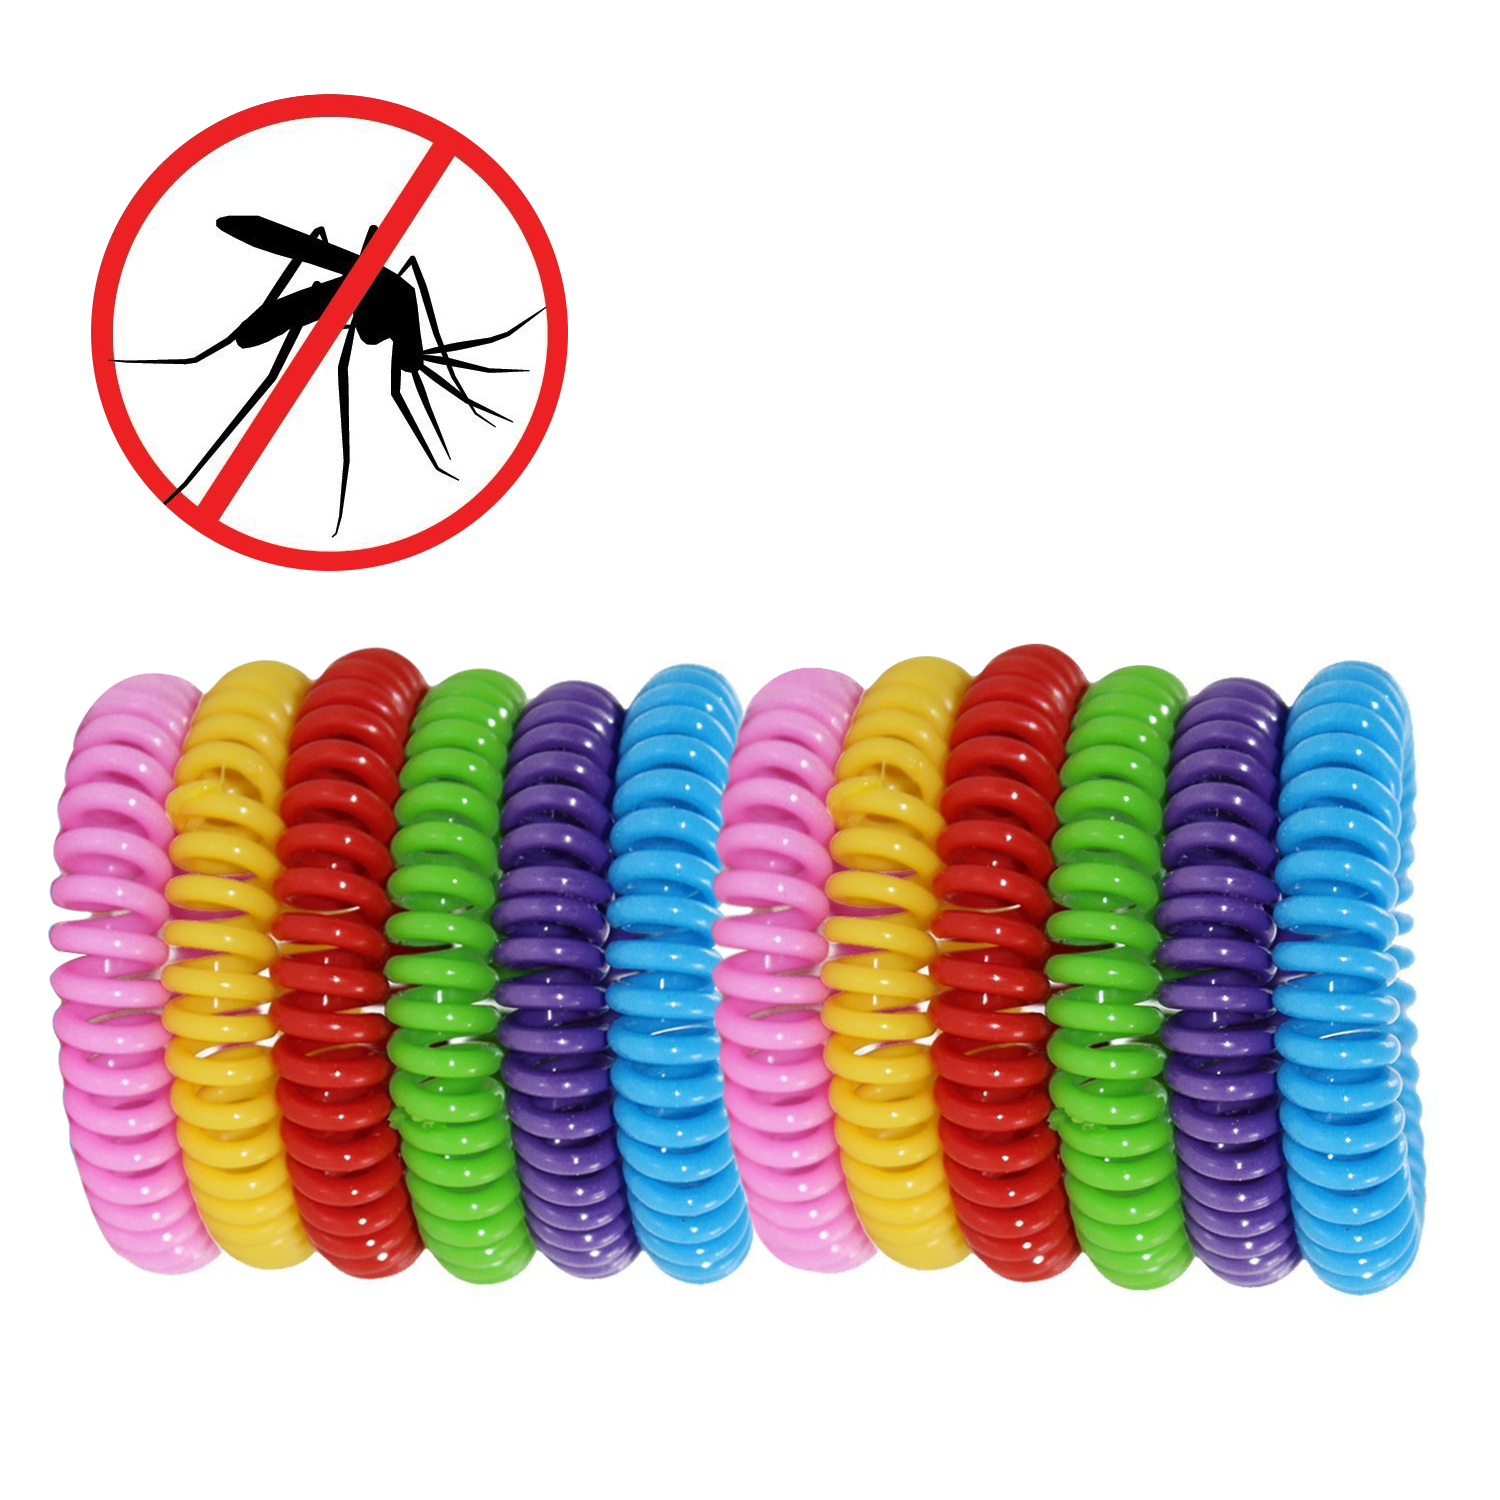 12 Pack Natural Mosquito Insect Repellent Bracelets Outdoor Indoor Bug Pest Control Multicolor Wristbands